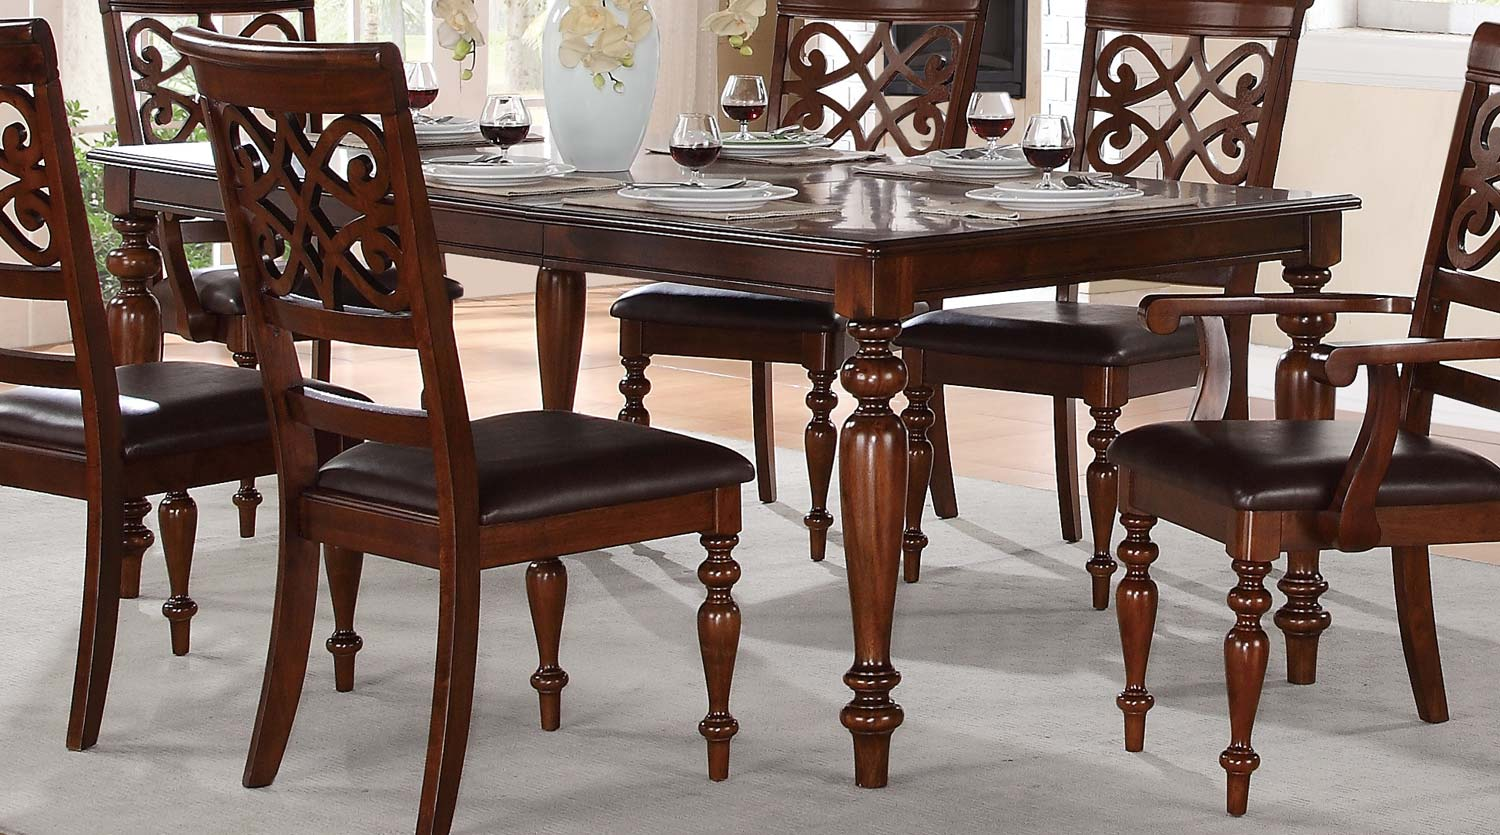 Homelegance Creswell Leg Dining Table with Leaf - Rich Cherry